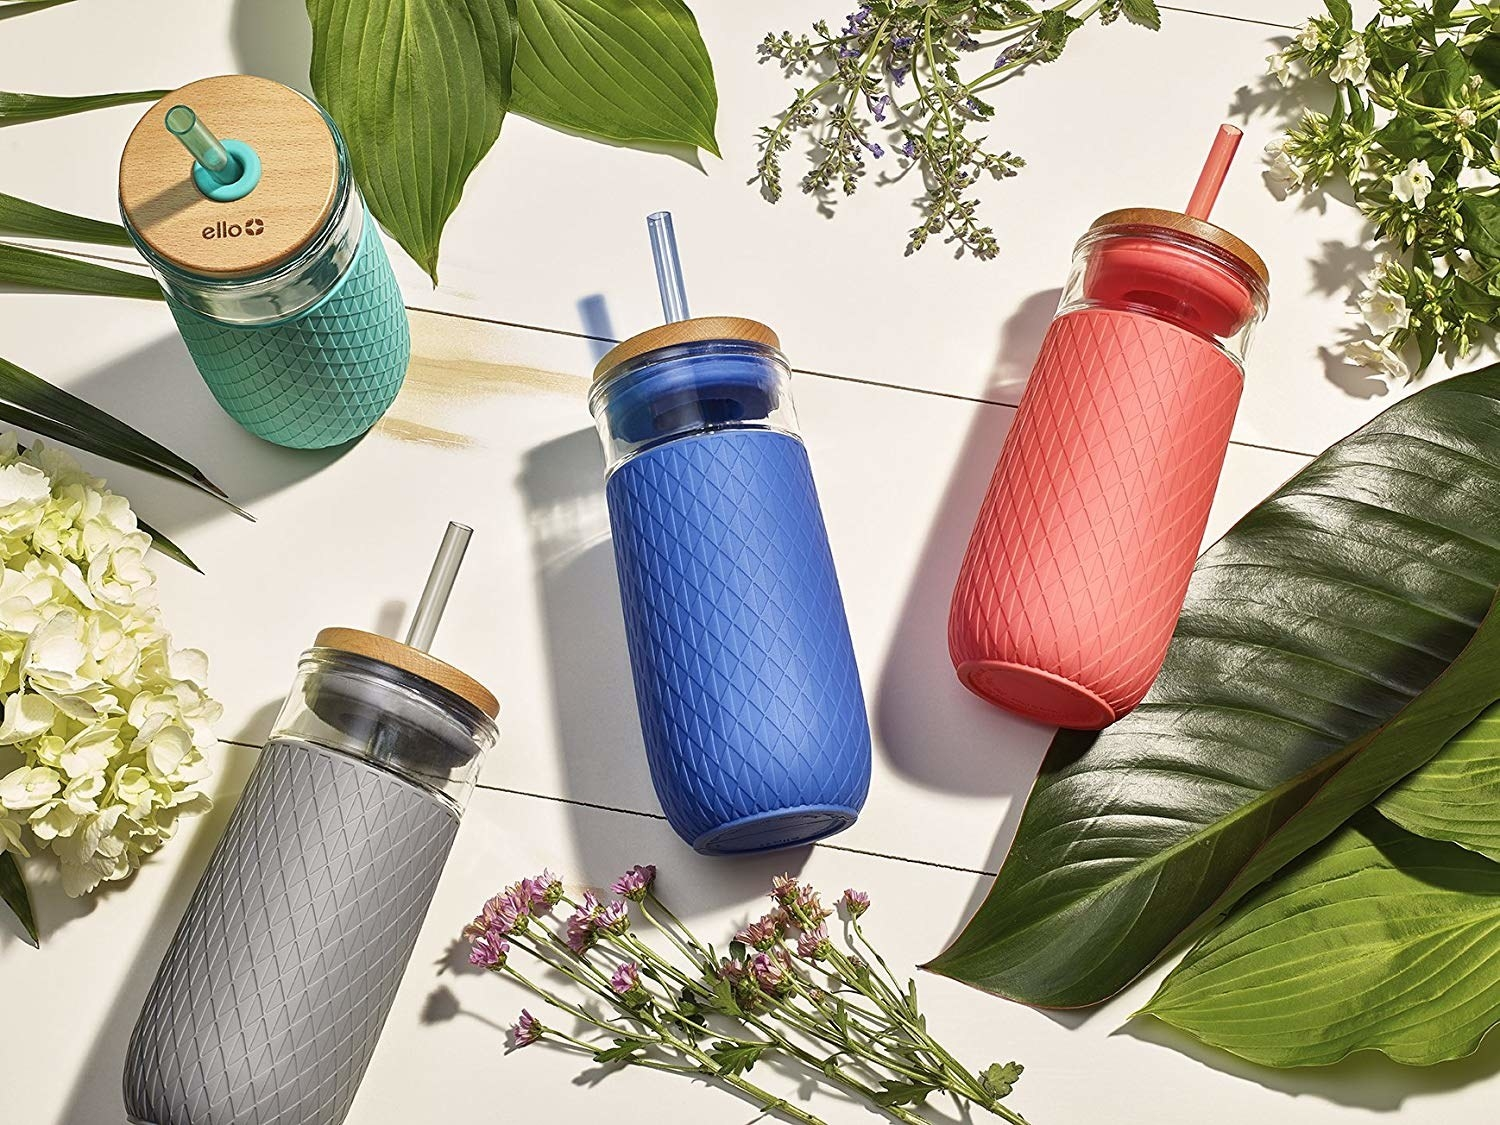 the tumblers in different colors